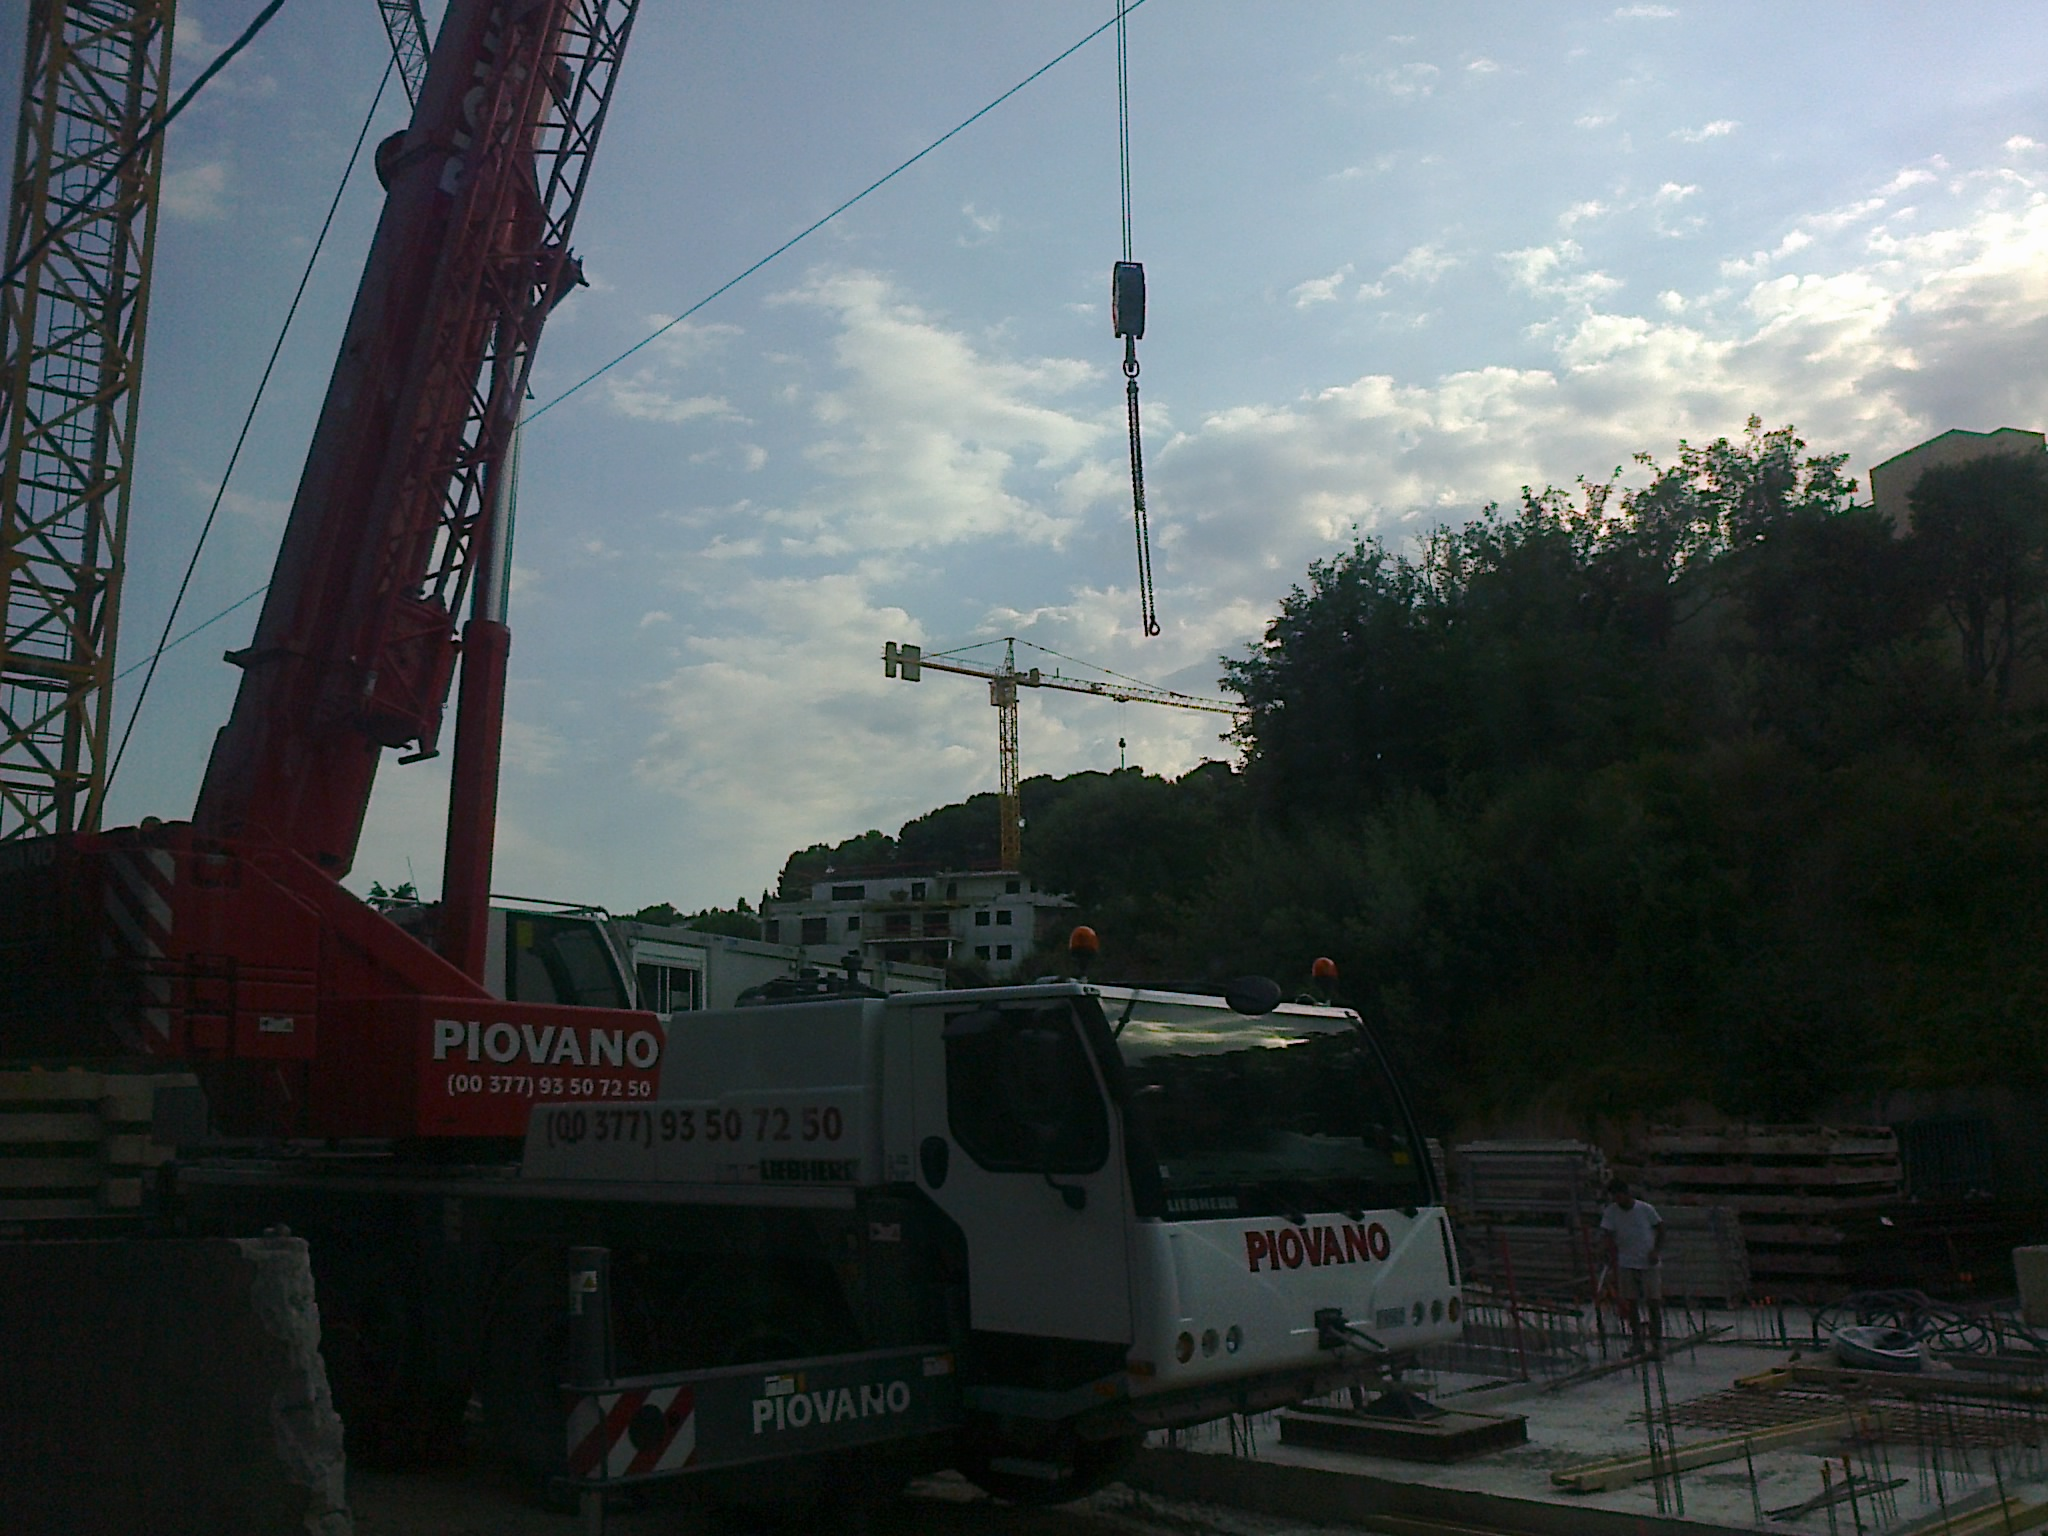 Les Grues de PIOVANO (France & Italie) 625627Photo4706